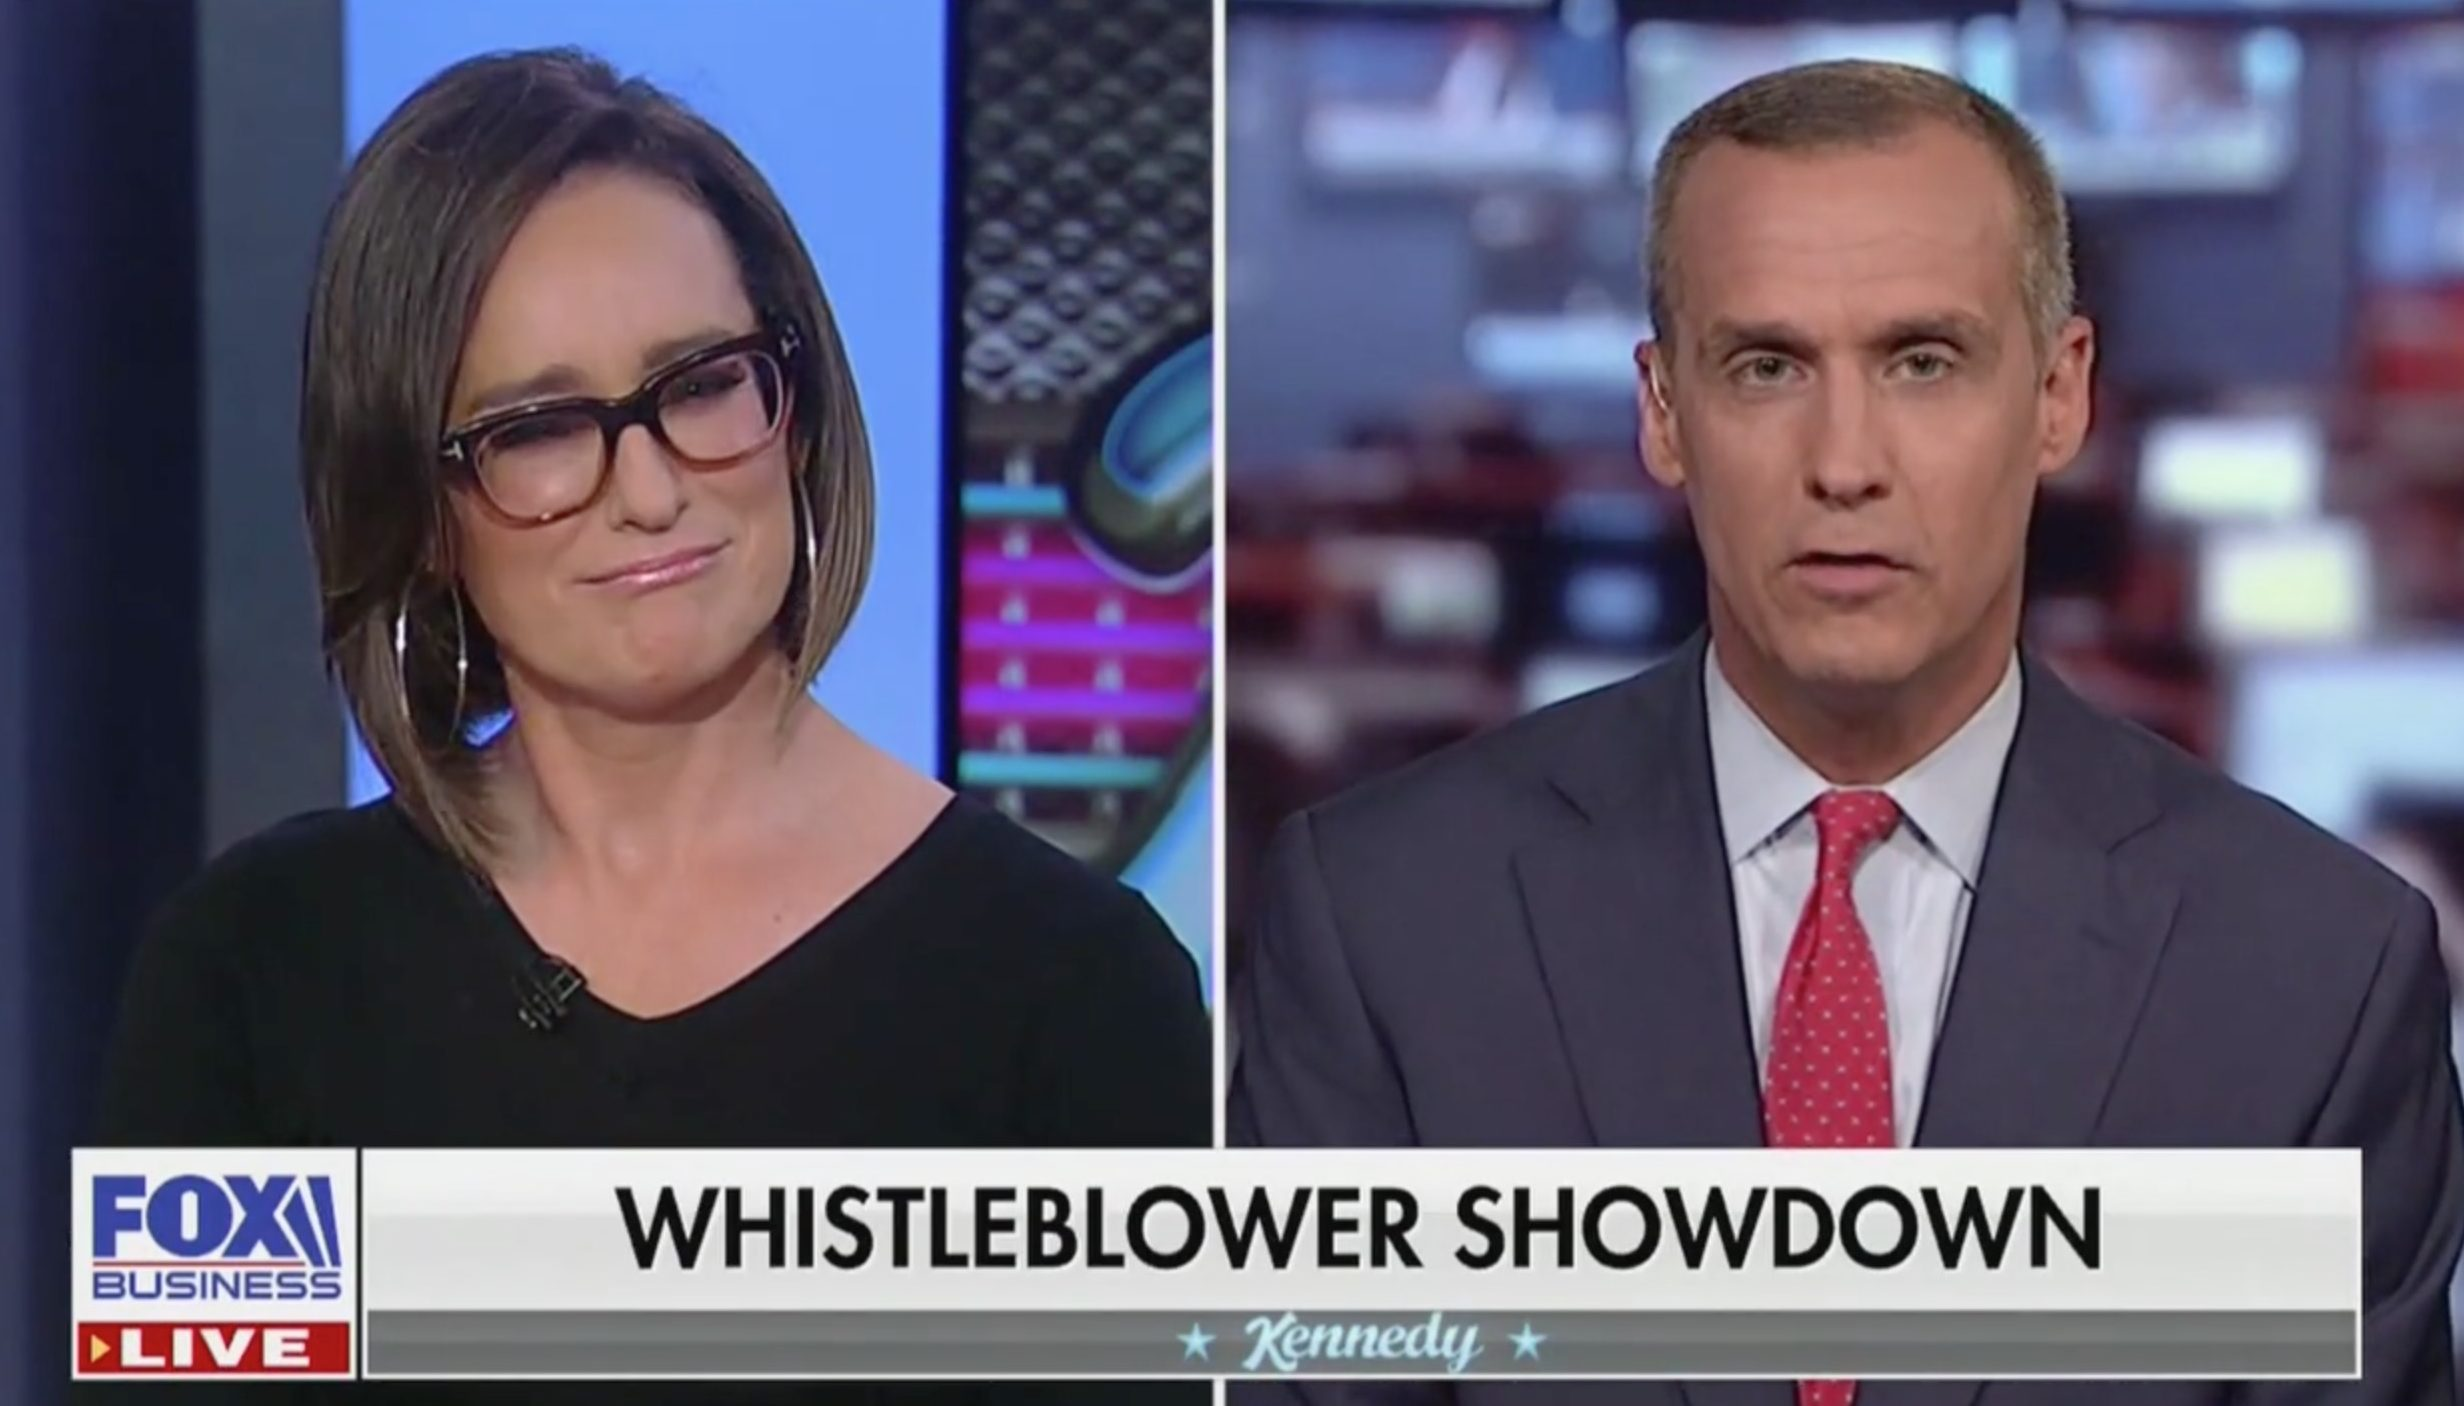 'You Sound a Little Slurry': Corey Lewandowski Called Out By Fox Host for Acting Drunk on the Air in Wild Interview